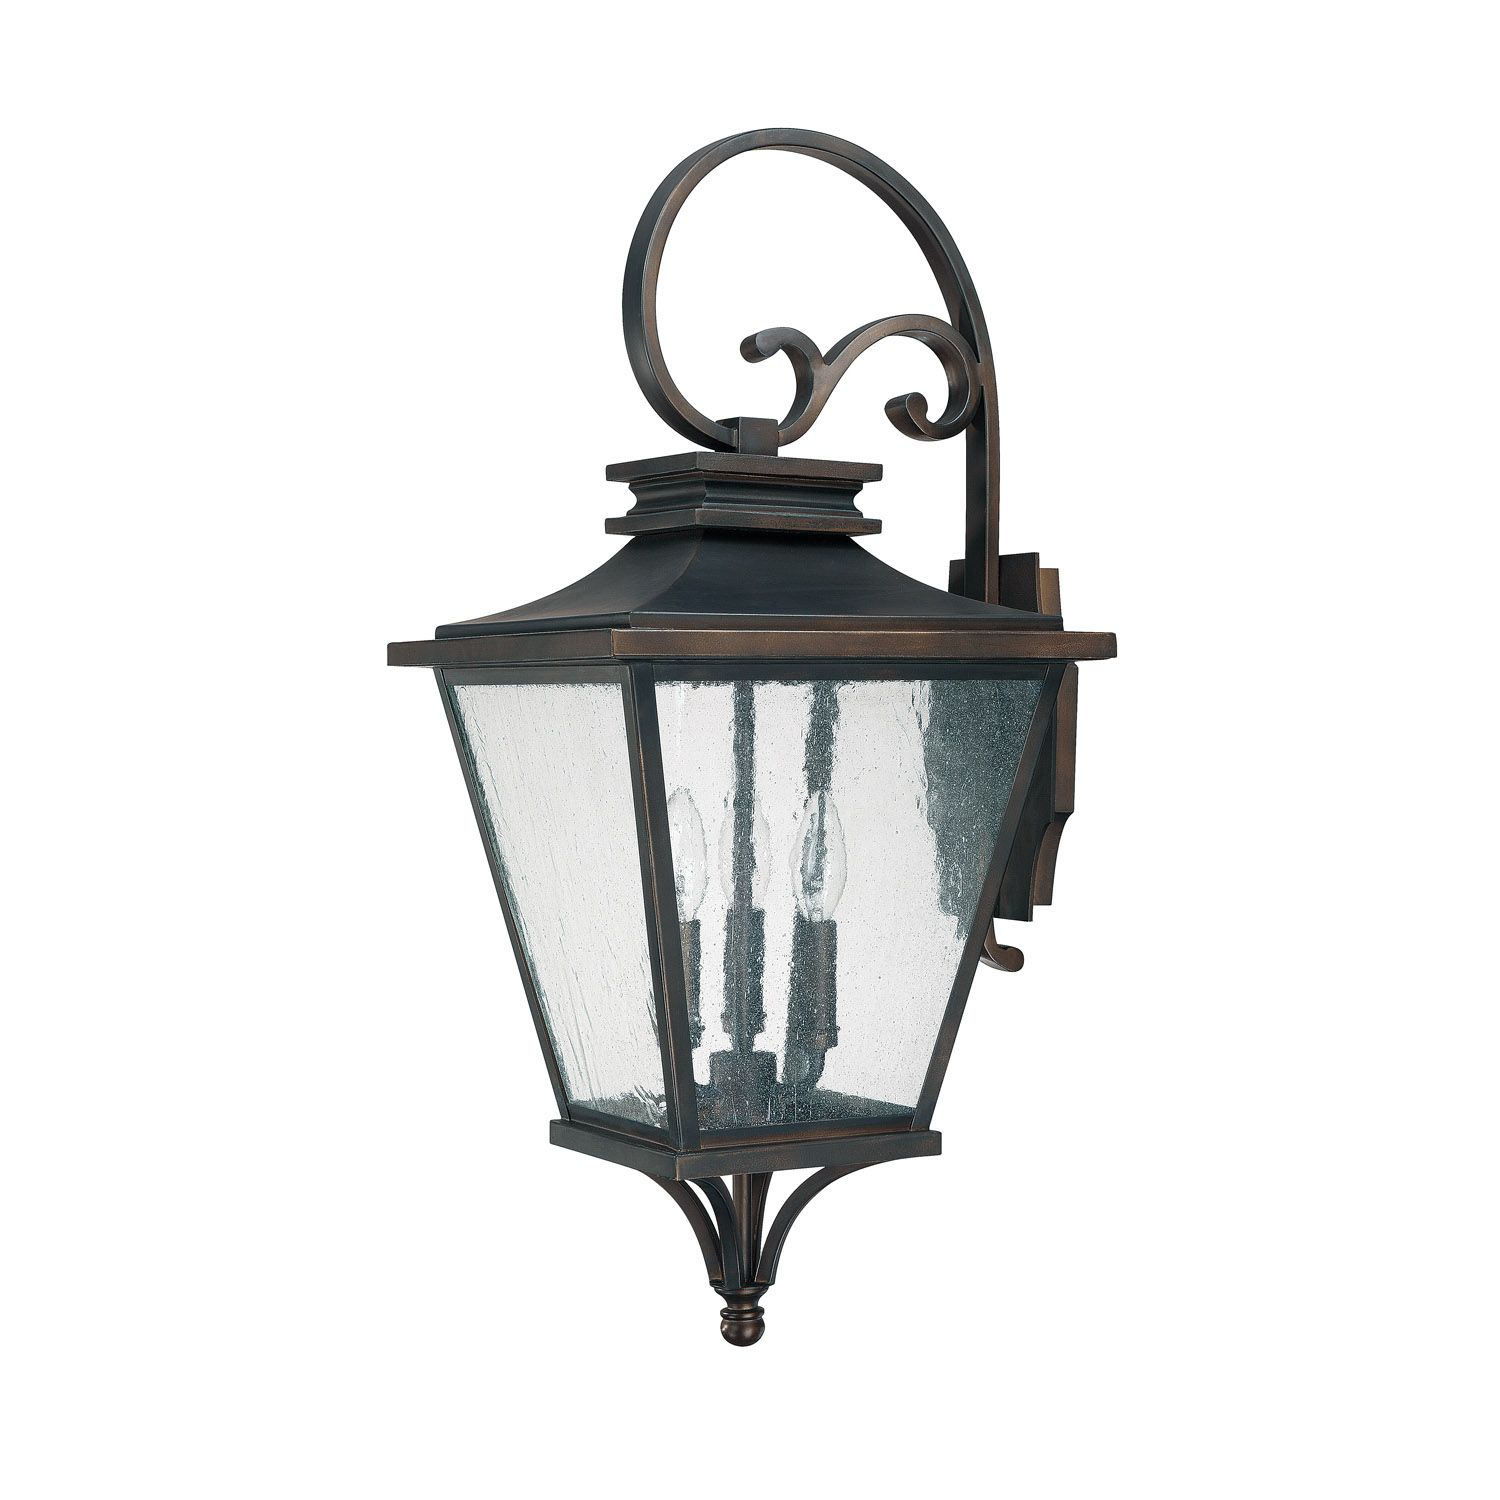 Old bronze gentry three light outdoor wall lantern 265 h x 12 w buy the capital lighting old bronze direct shop for the capital lighting old bronze gentry 3 light outdoor wall sconce and save arubaitofo Gallery